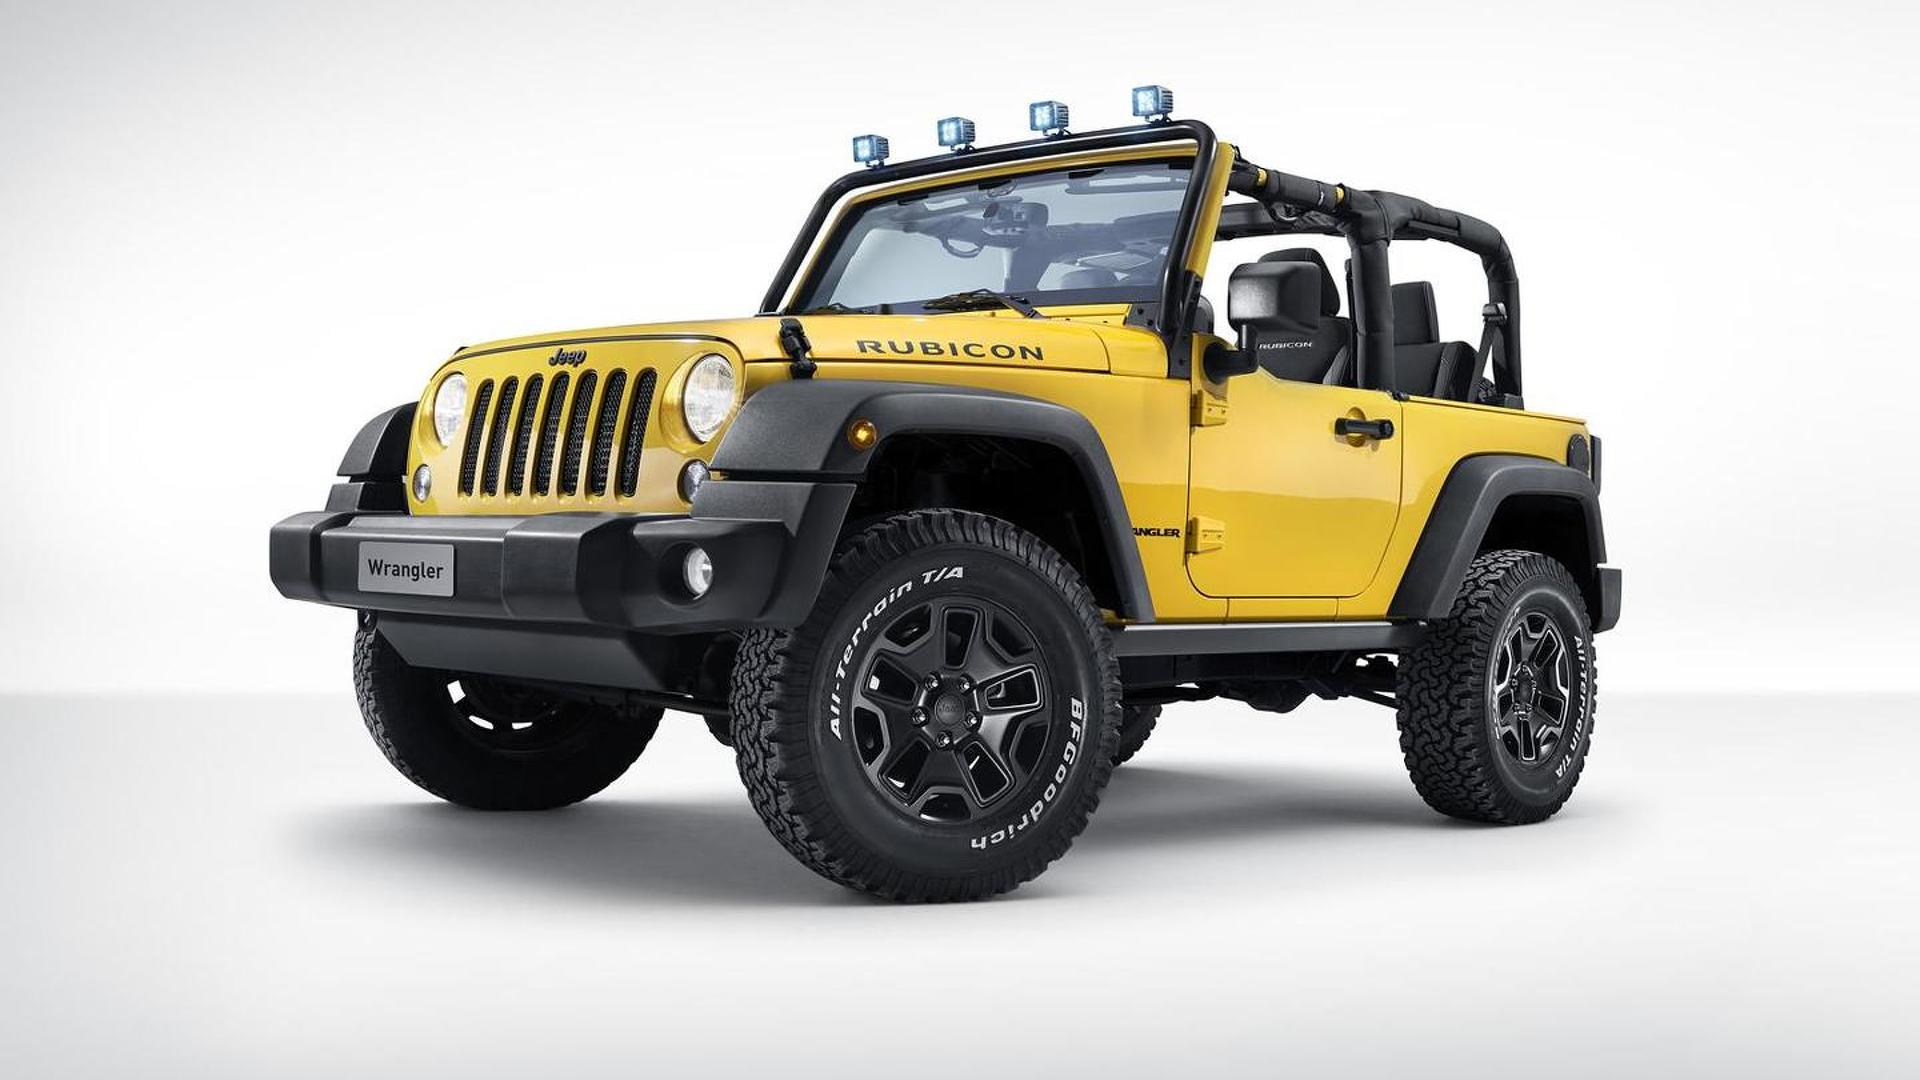 yellow large jeep research baja composite suv groovecar unlimited rubicon wrangler